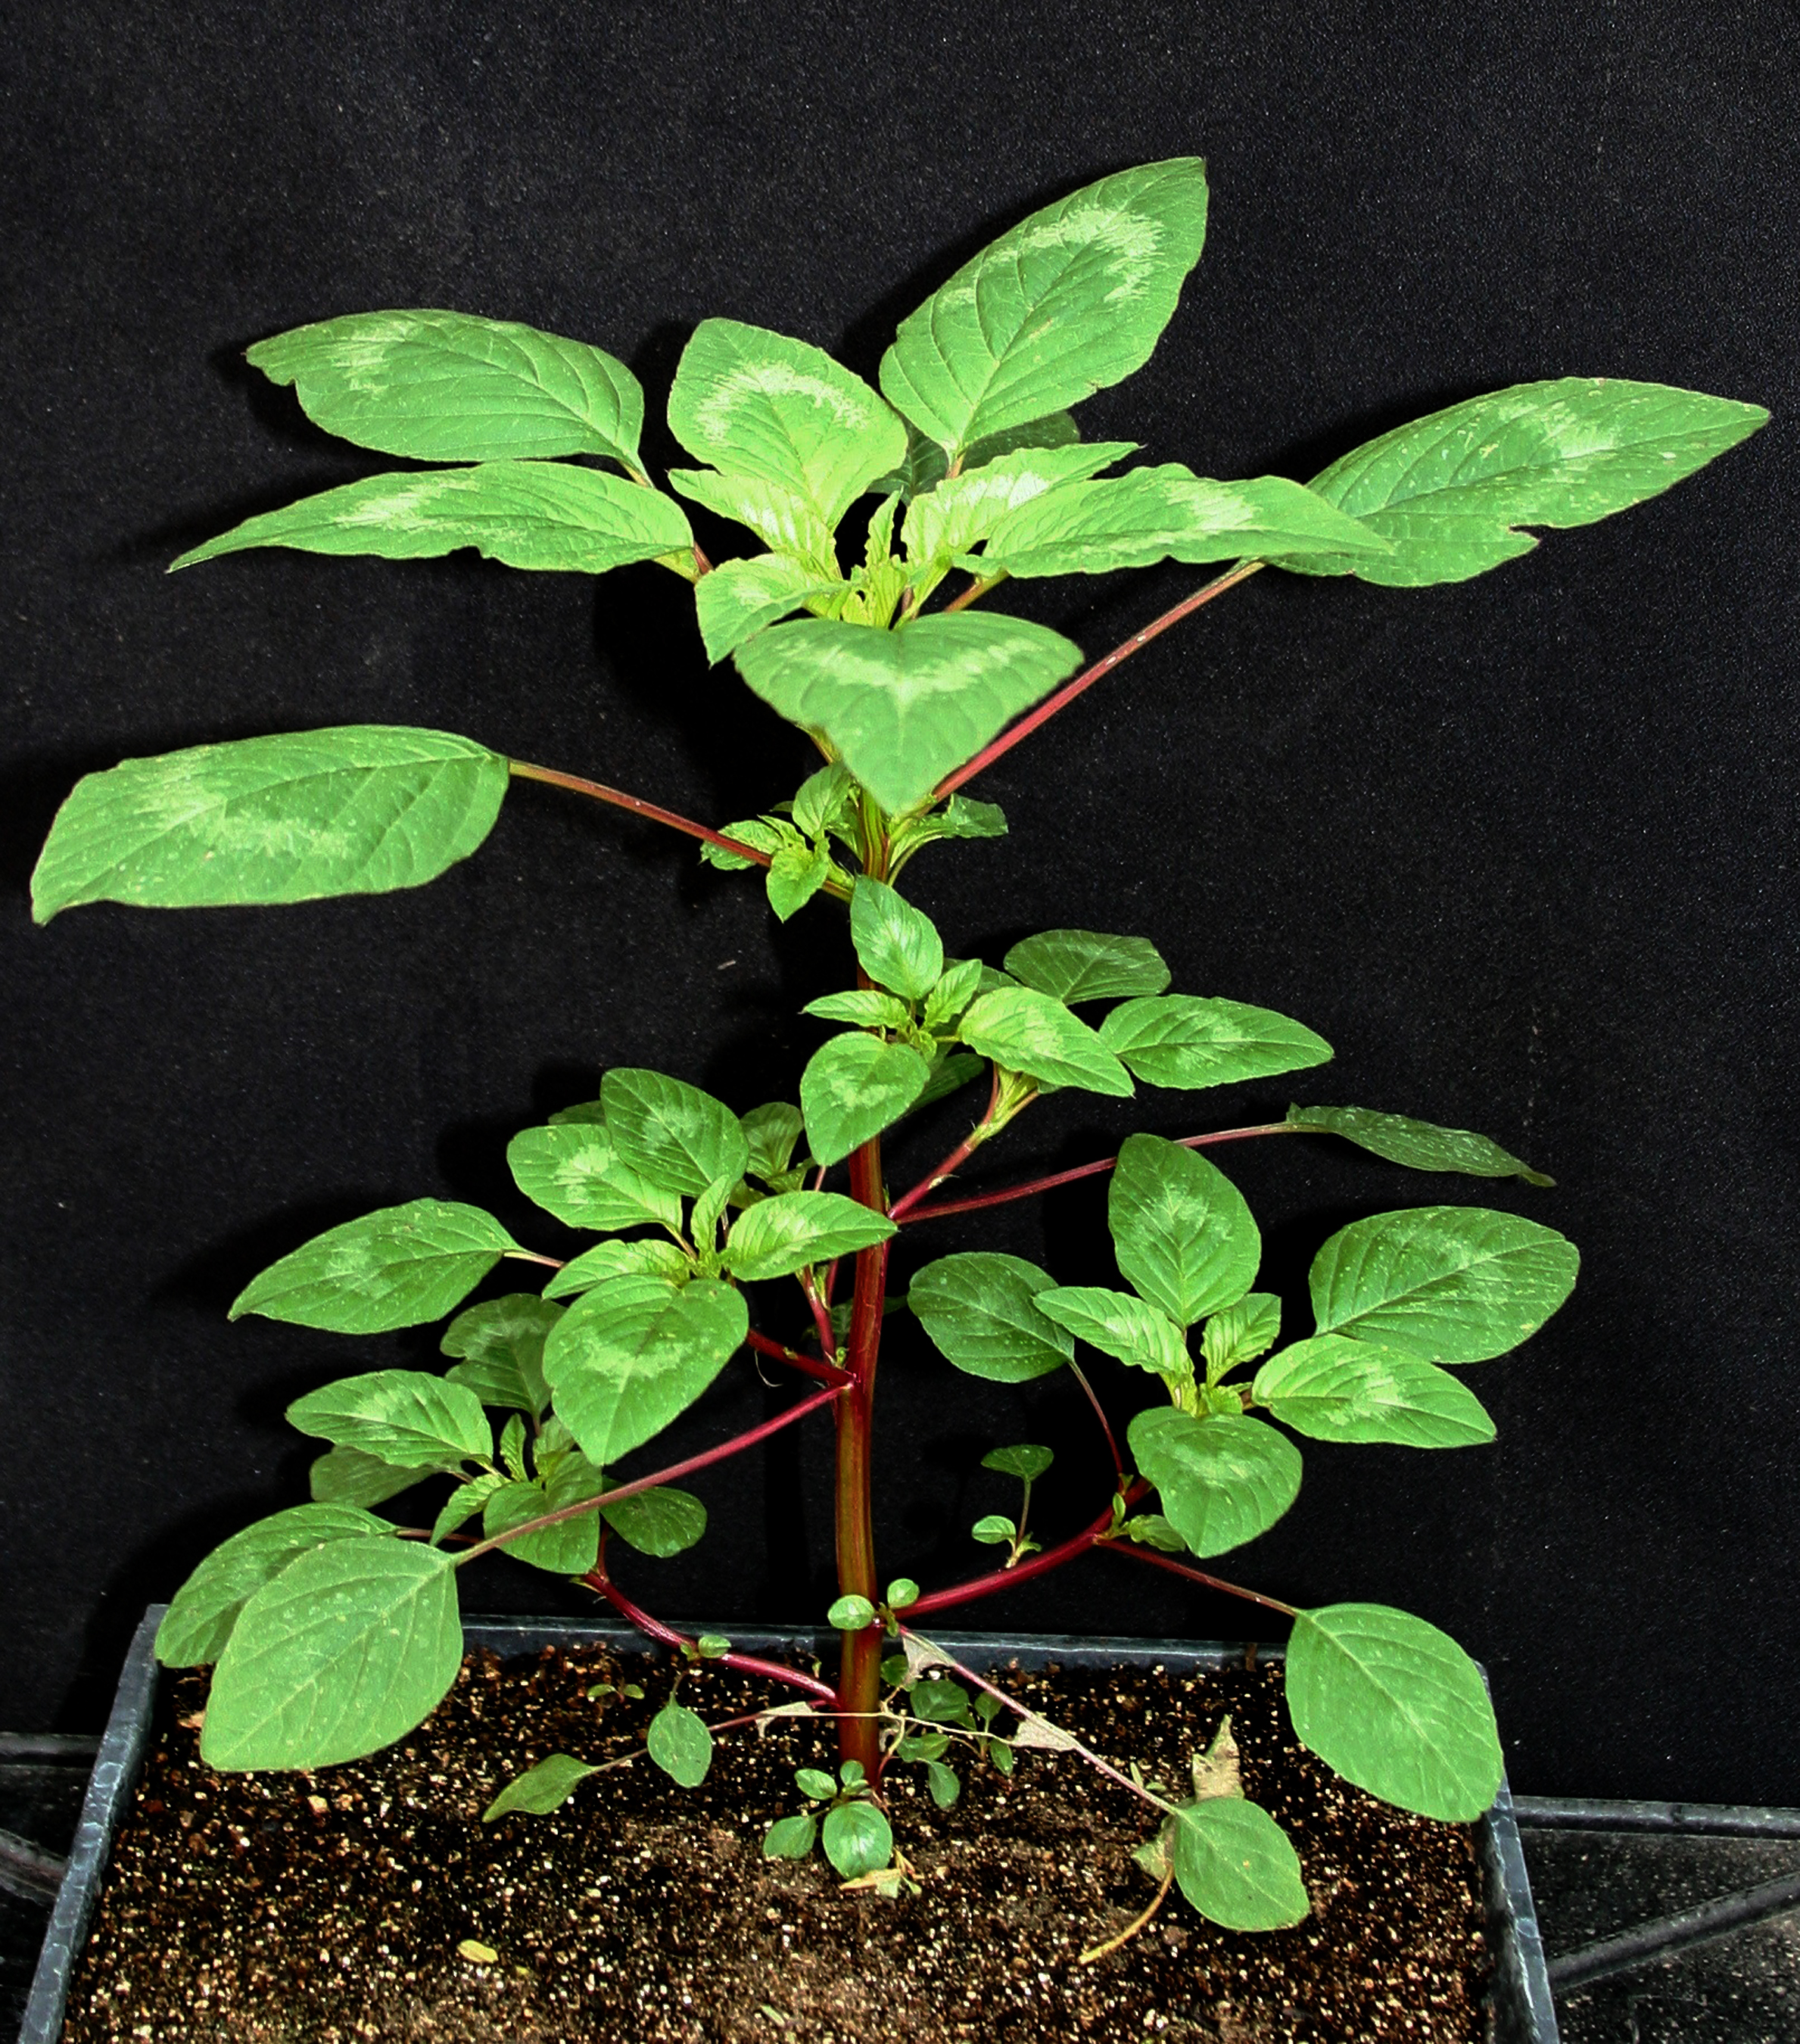 New publication to help farmers control Palmer amaranth weed ...